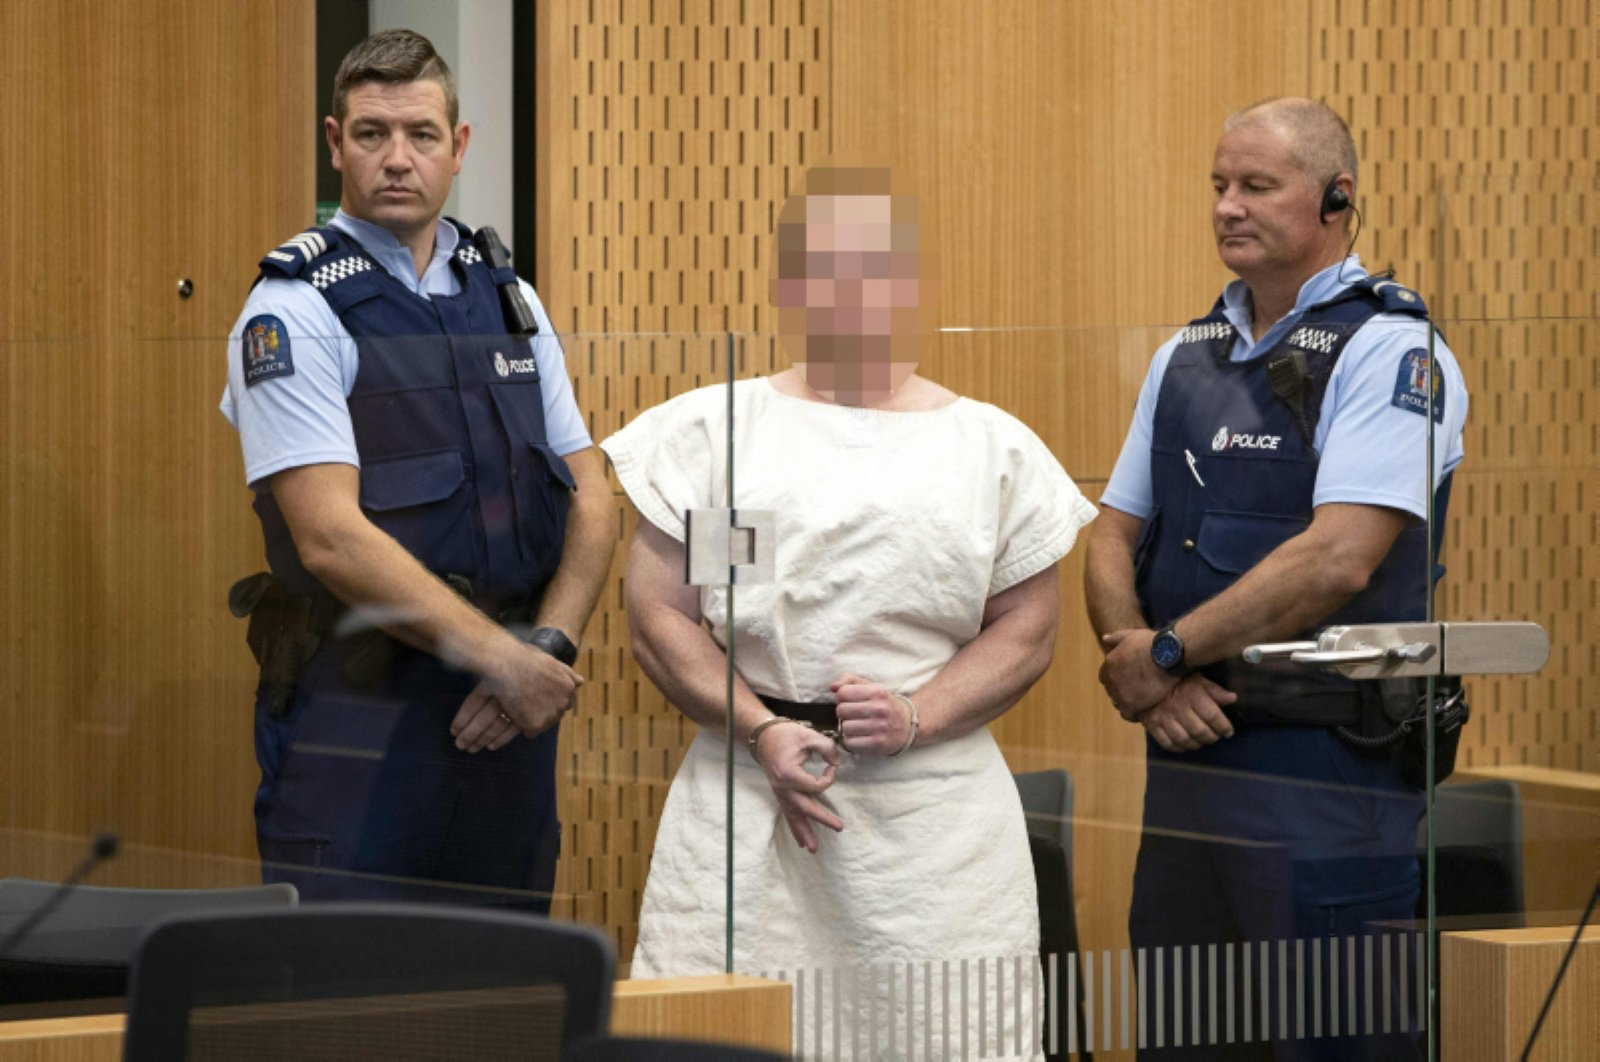 Brenton Tarrant, the terrorist charged in relation to the Christchurch massacre, makes a sign to the camera during his appearance in the Christchurch District Court on March 16, 2019. (AFP Photo)